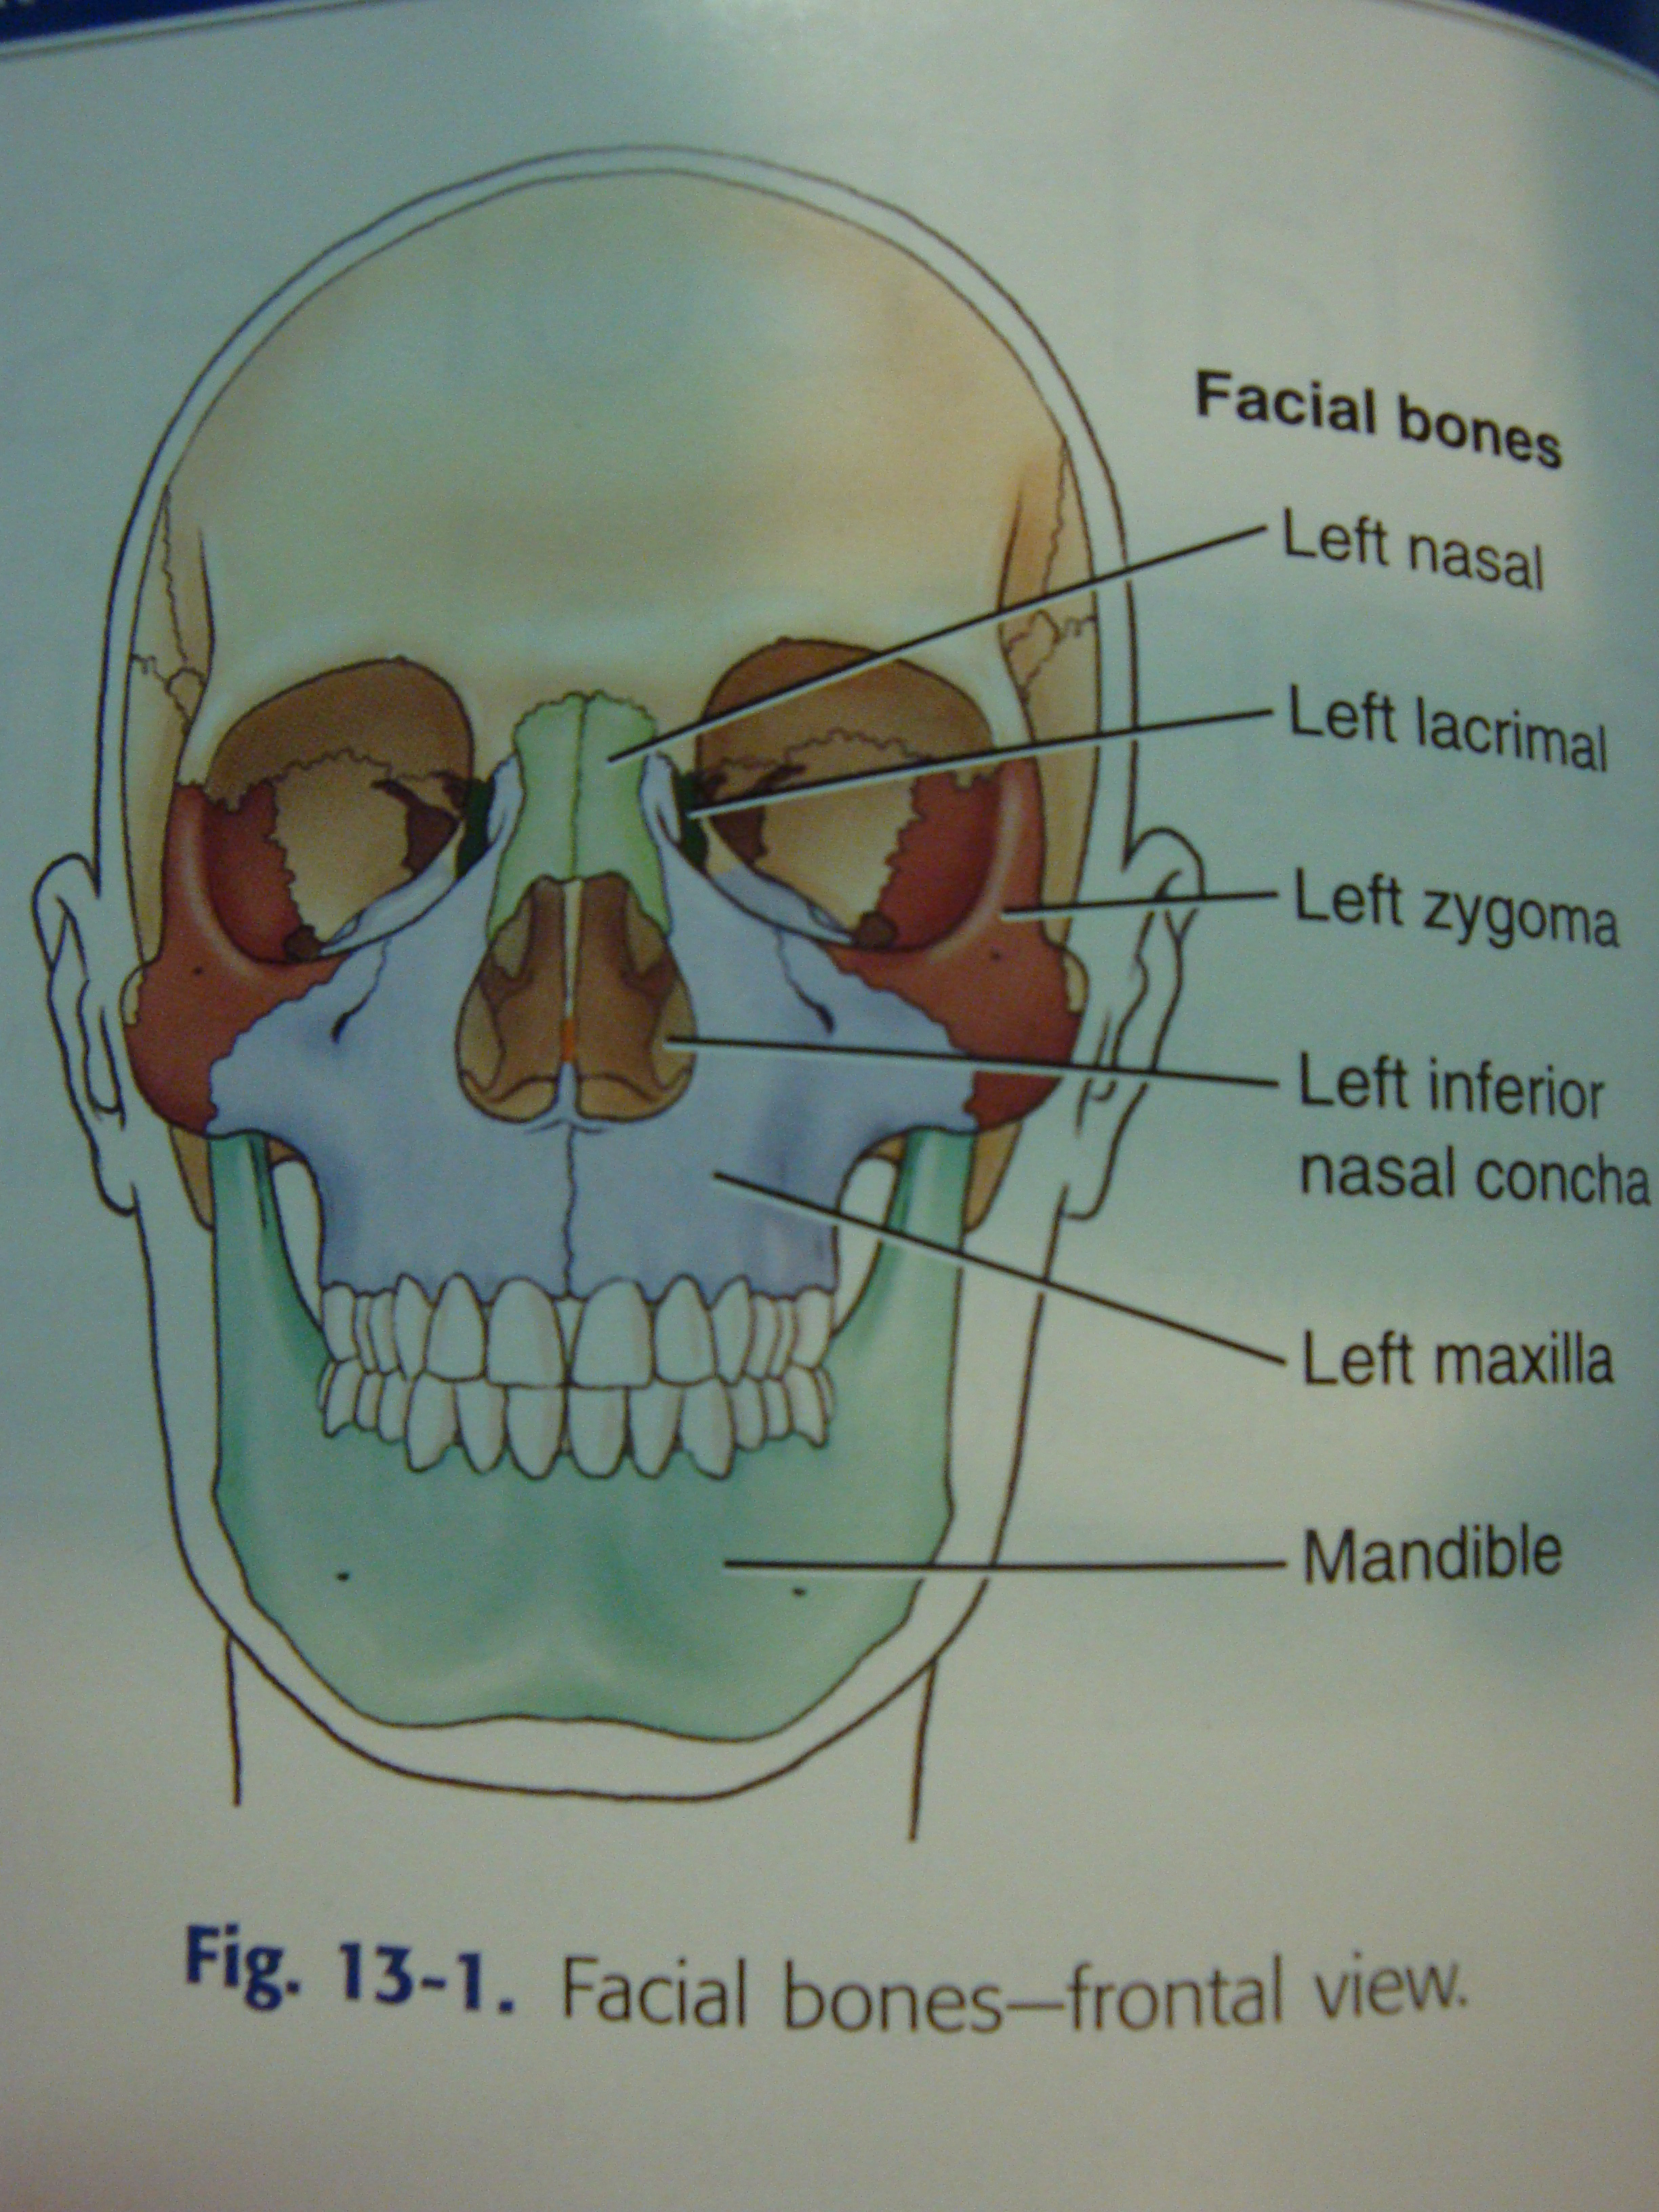 Outstanding Anatomy Of Facial Bones Ensign Human Anatomy Images